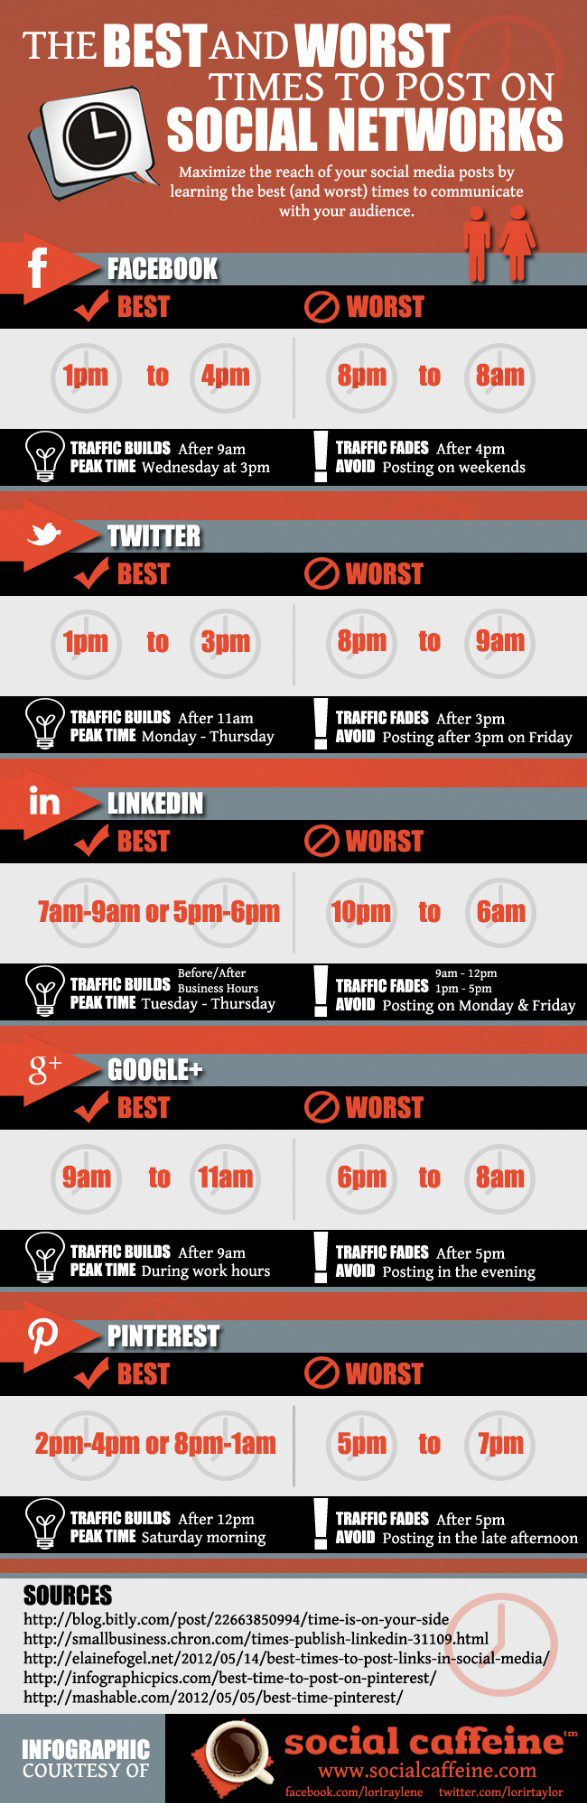 Best and worst times to post on social media